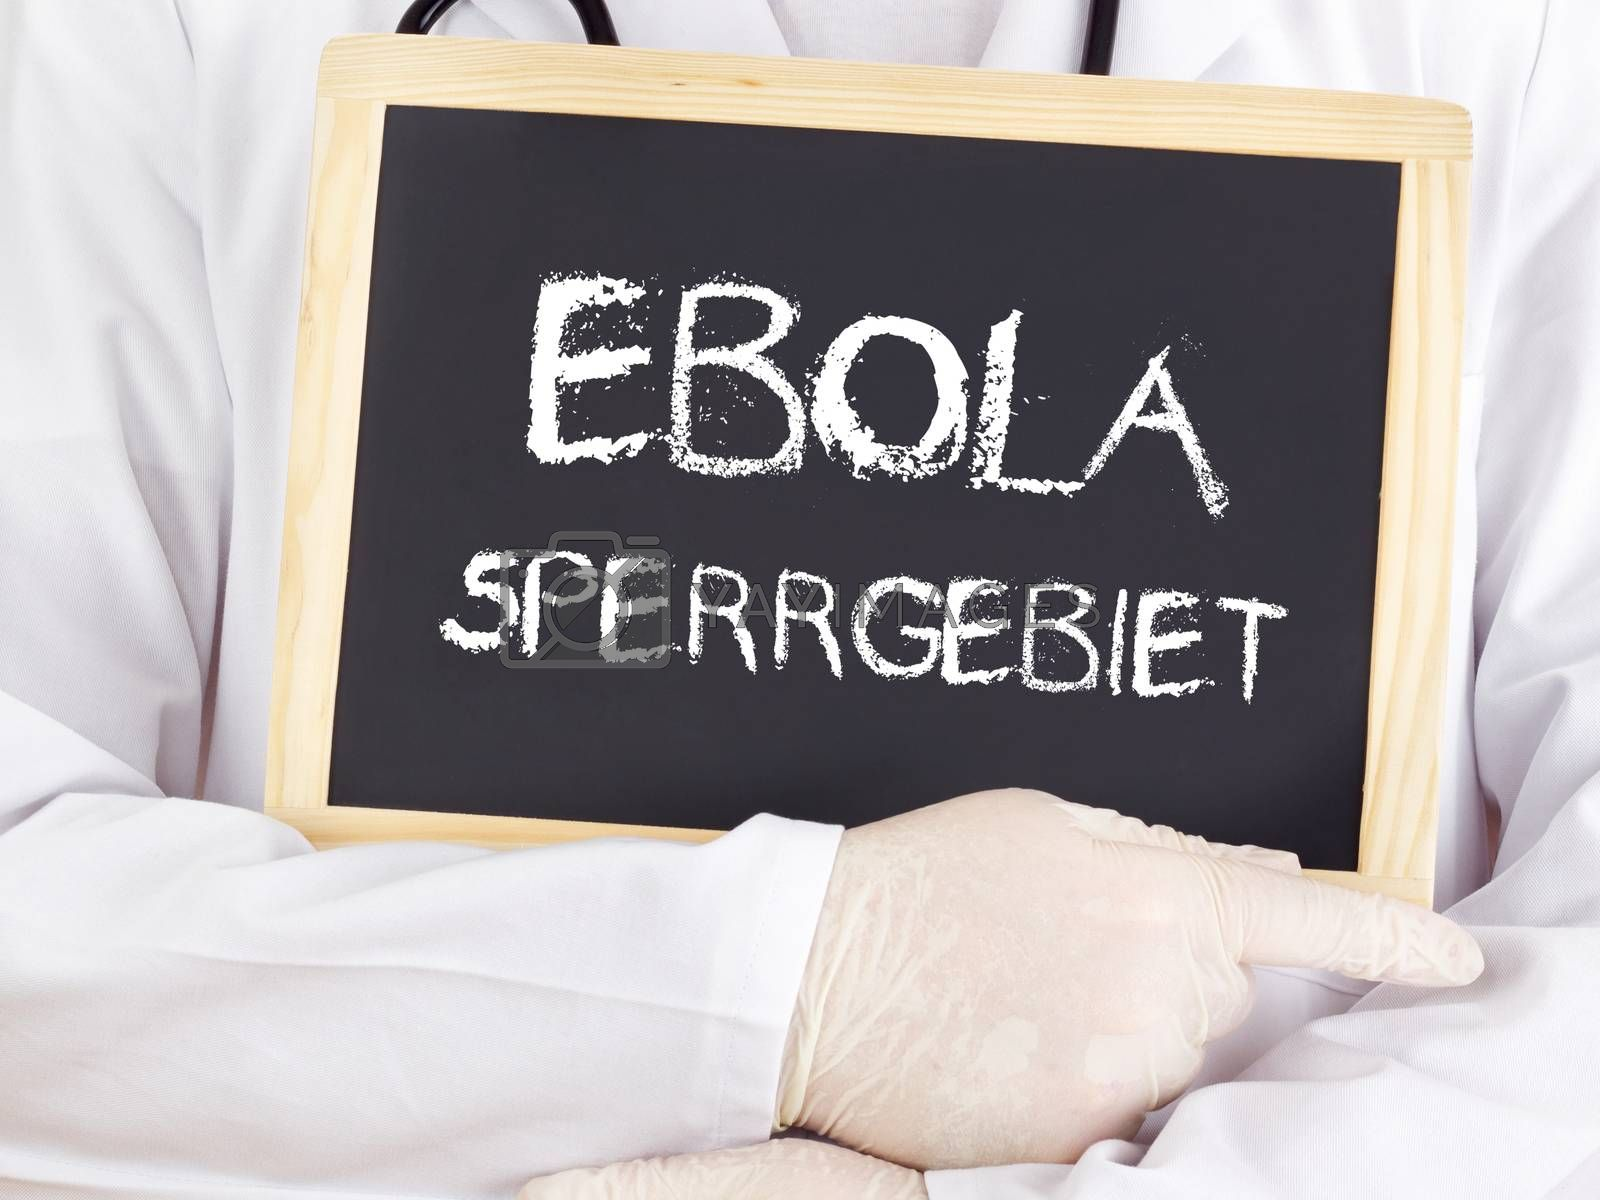 Doctor shows information: Ebola restricted area in german